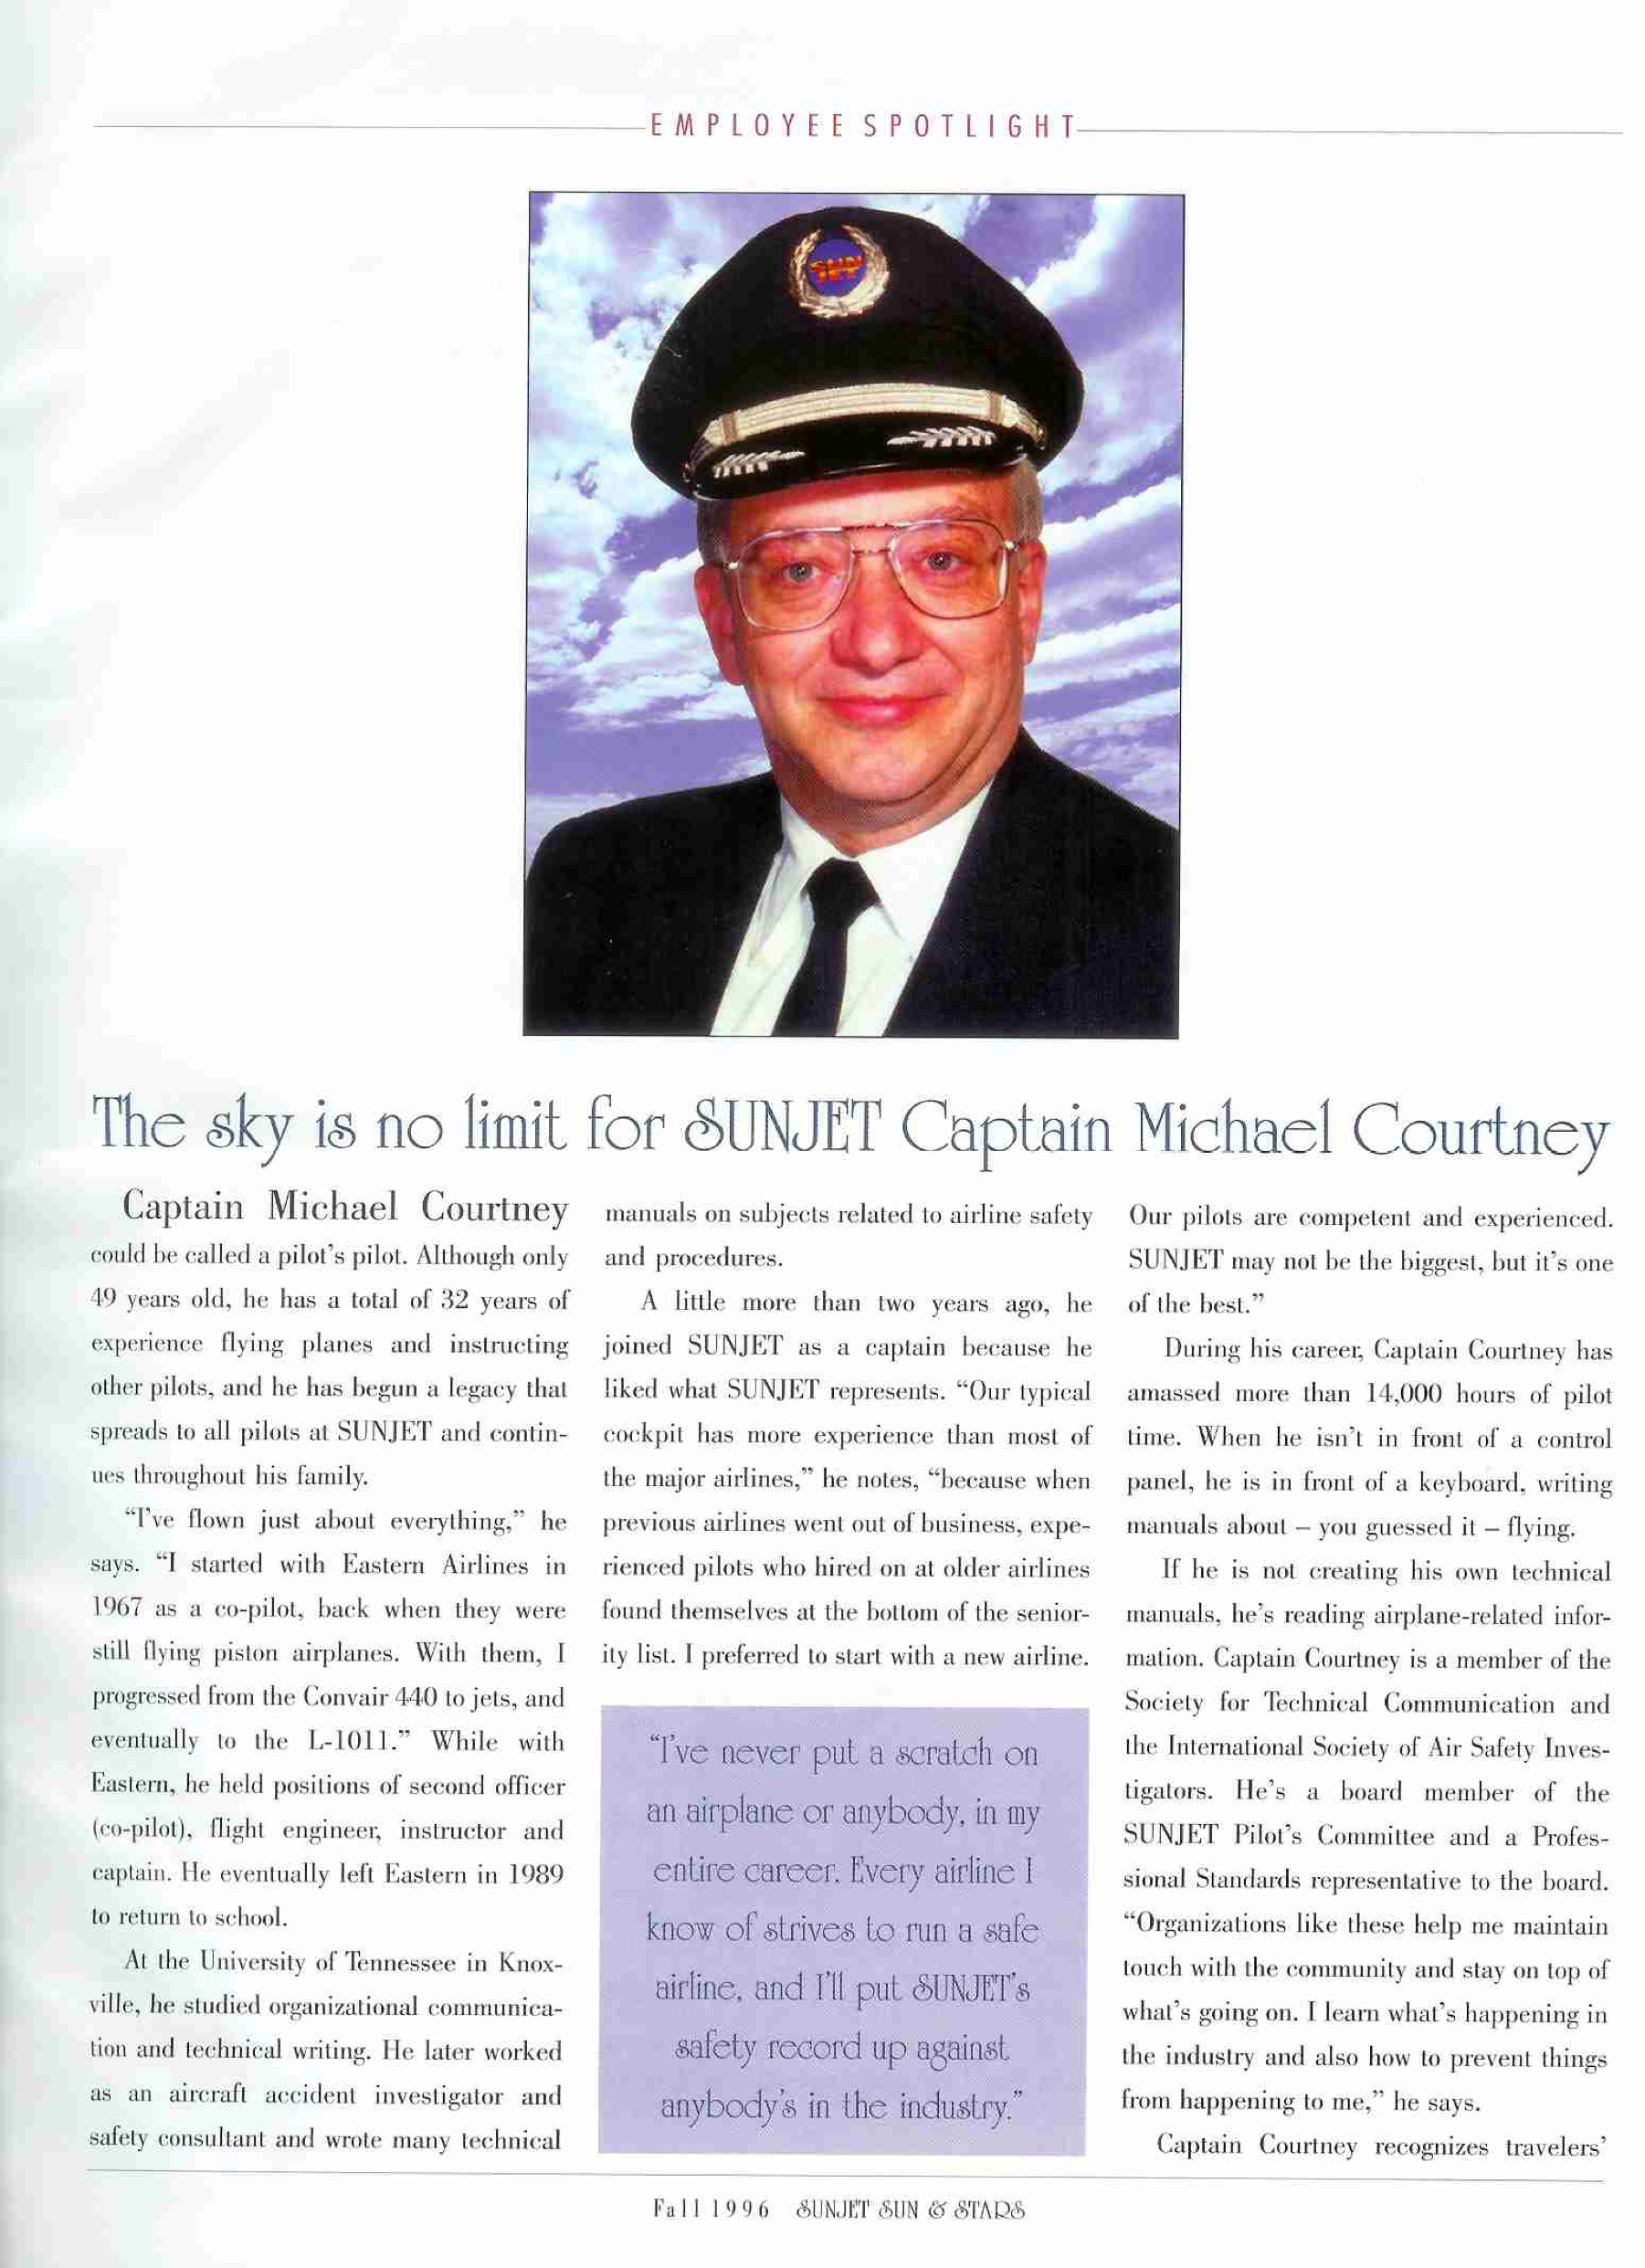 Captain Michael Courtney